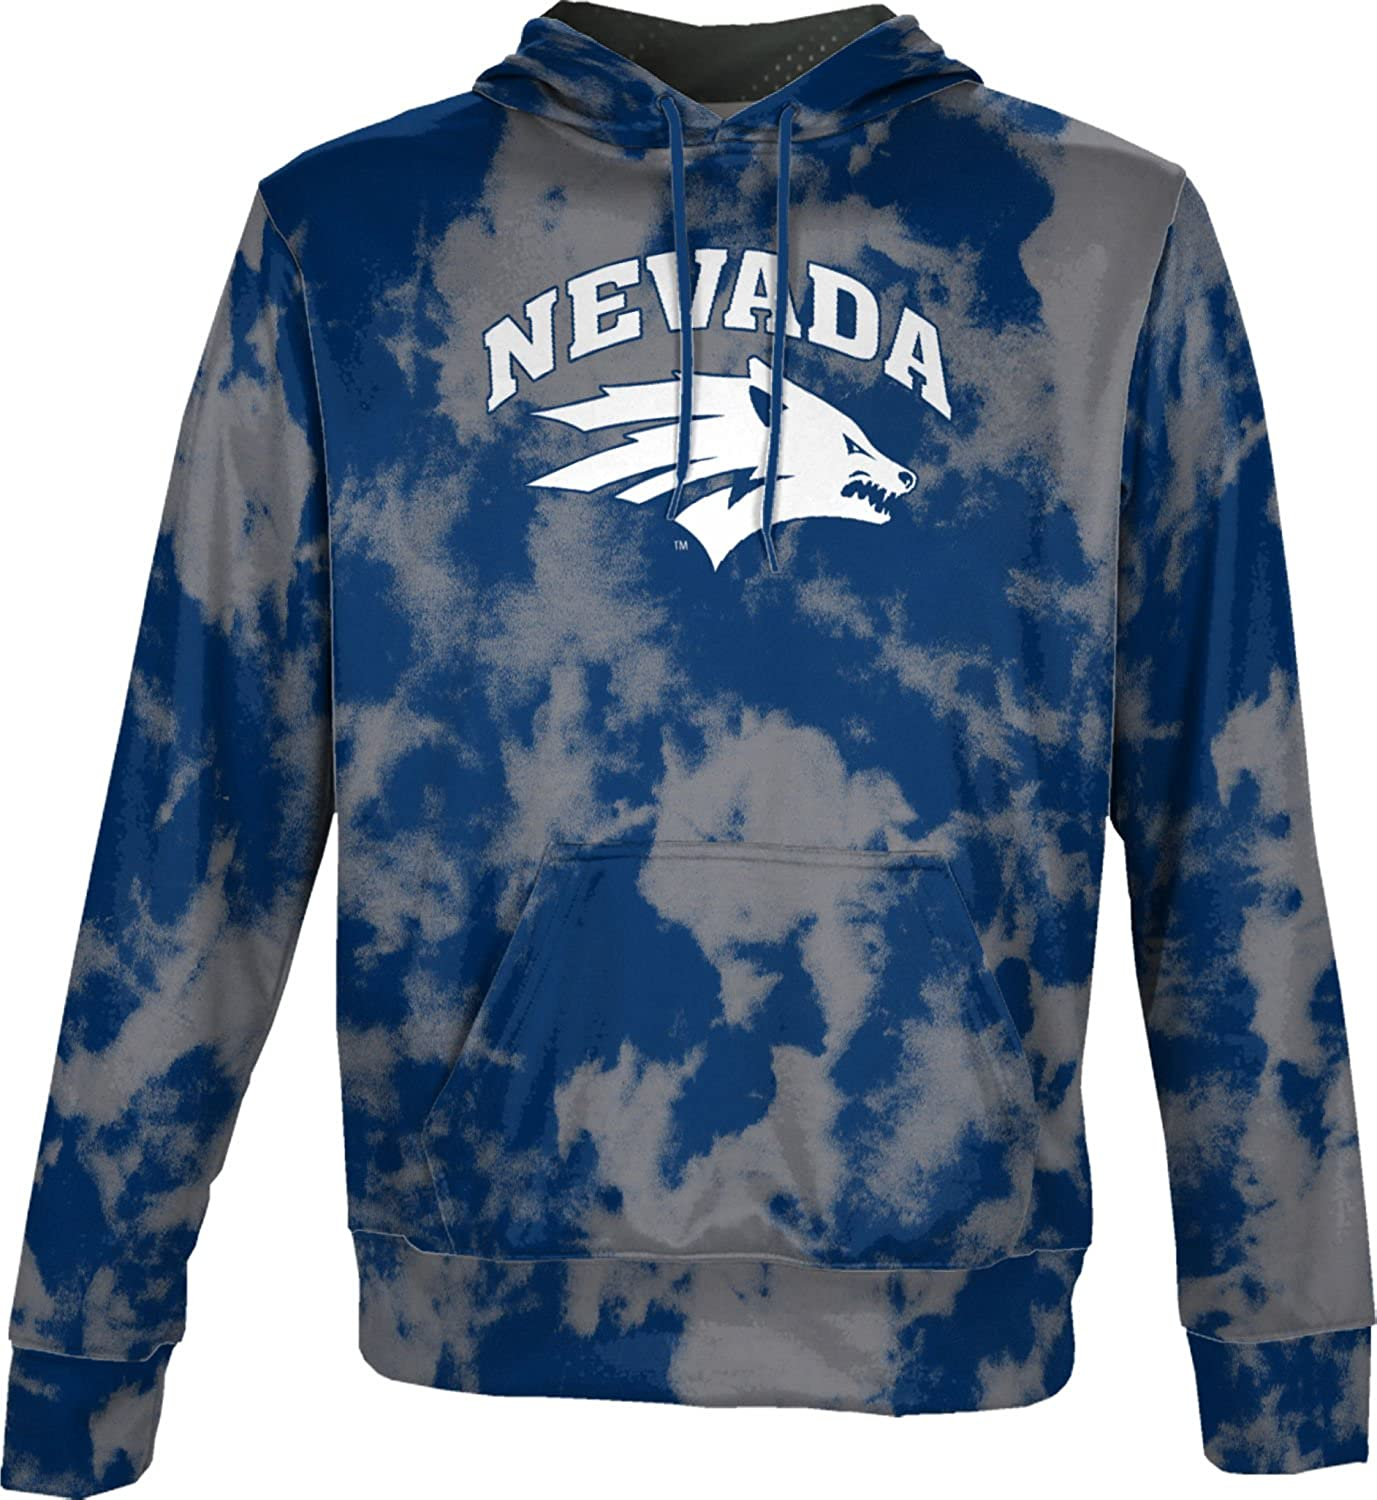 School Spirit Sweatshirt ProSphere University of Nevada Mens Pullover Hoodie Grunge